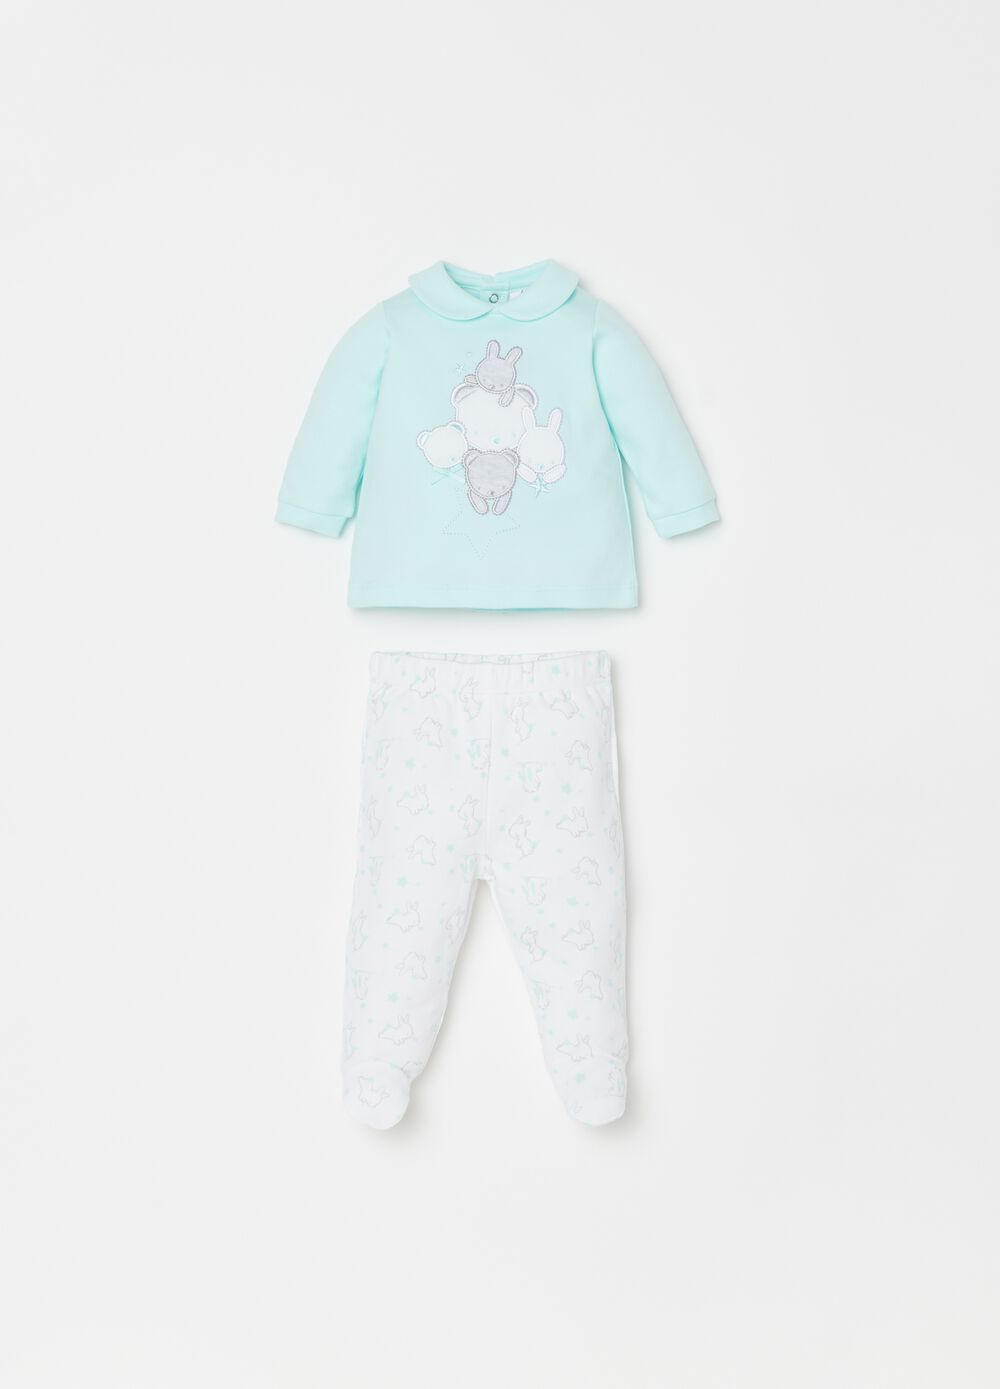 T-shirt and trousers set in 100% cotton